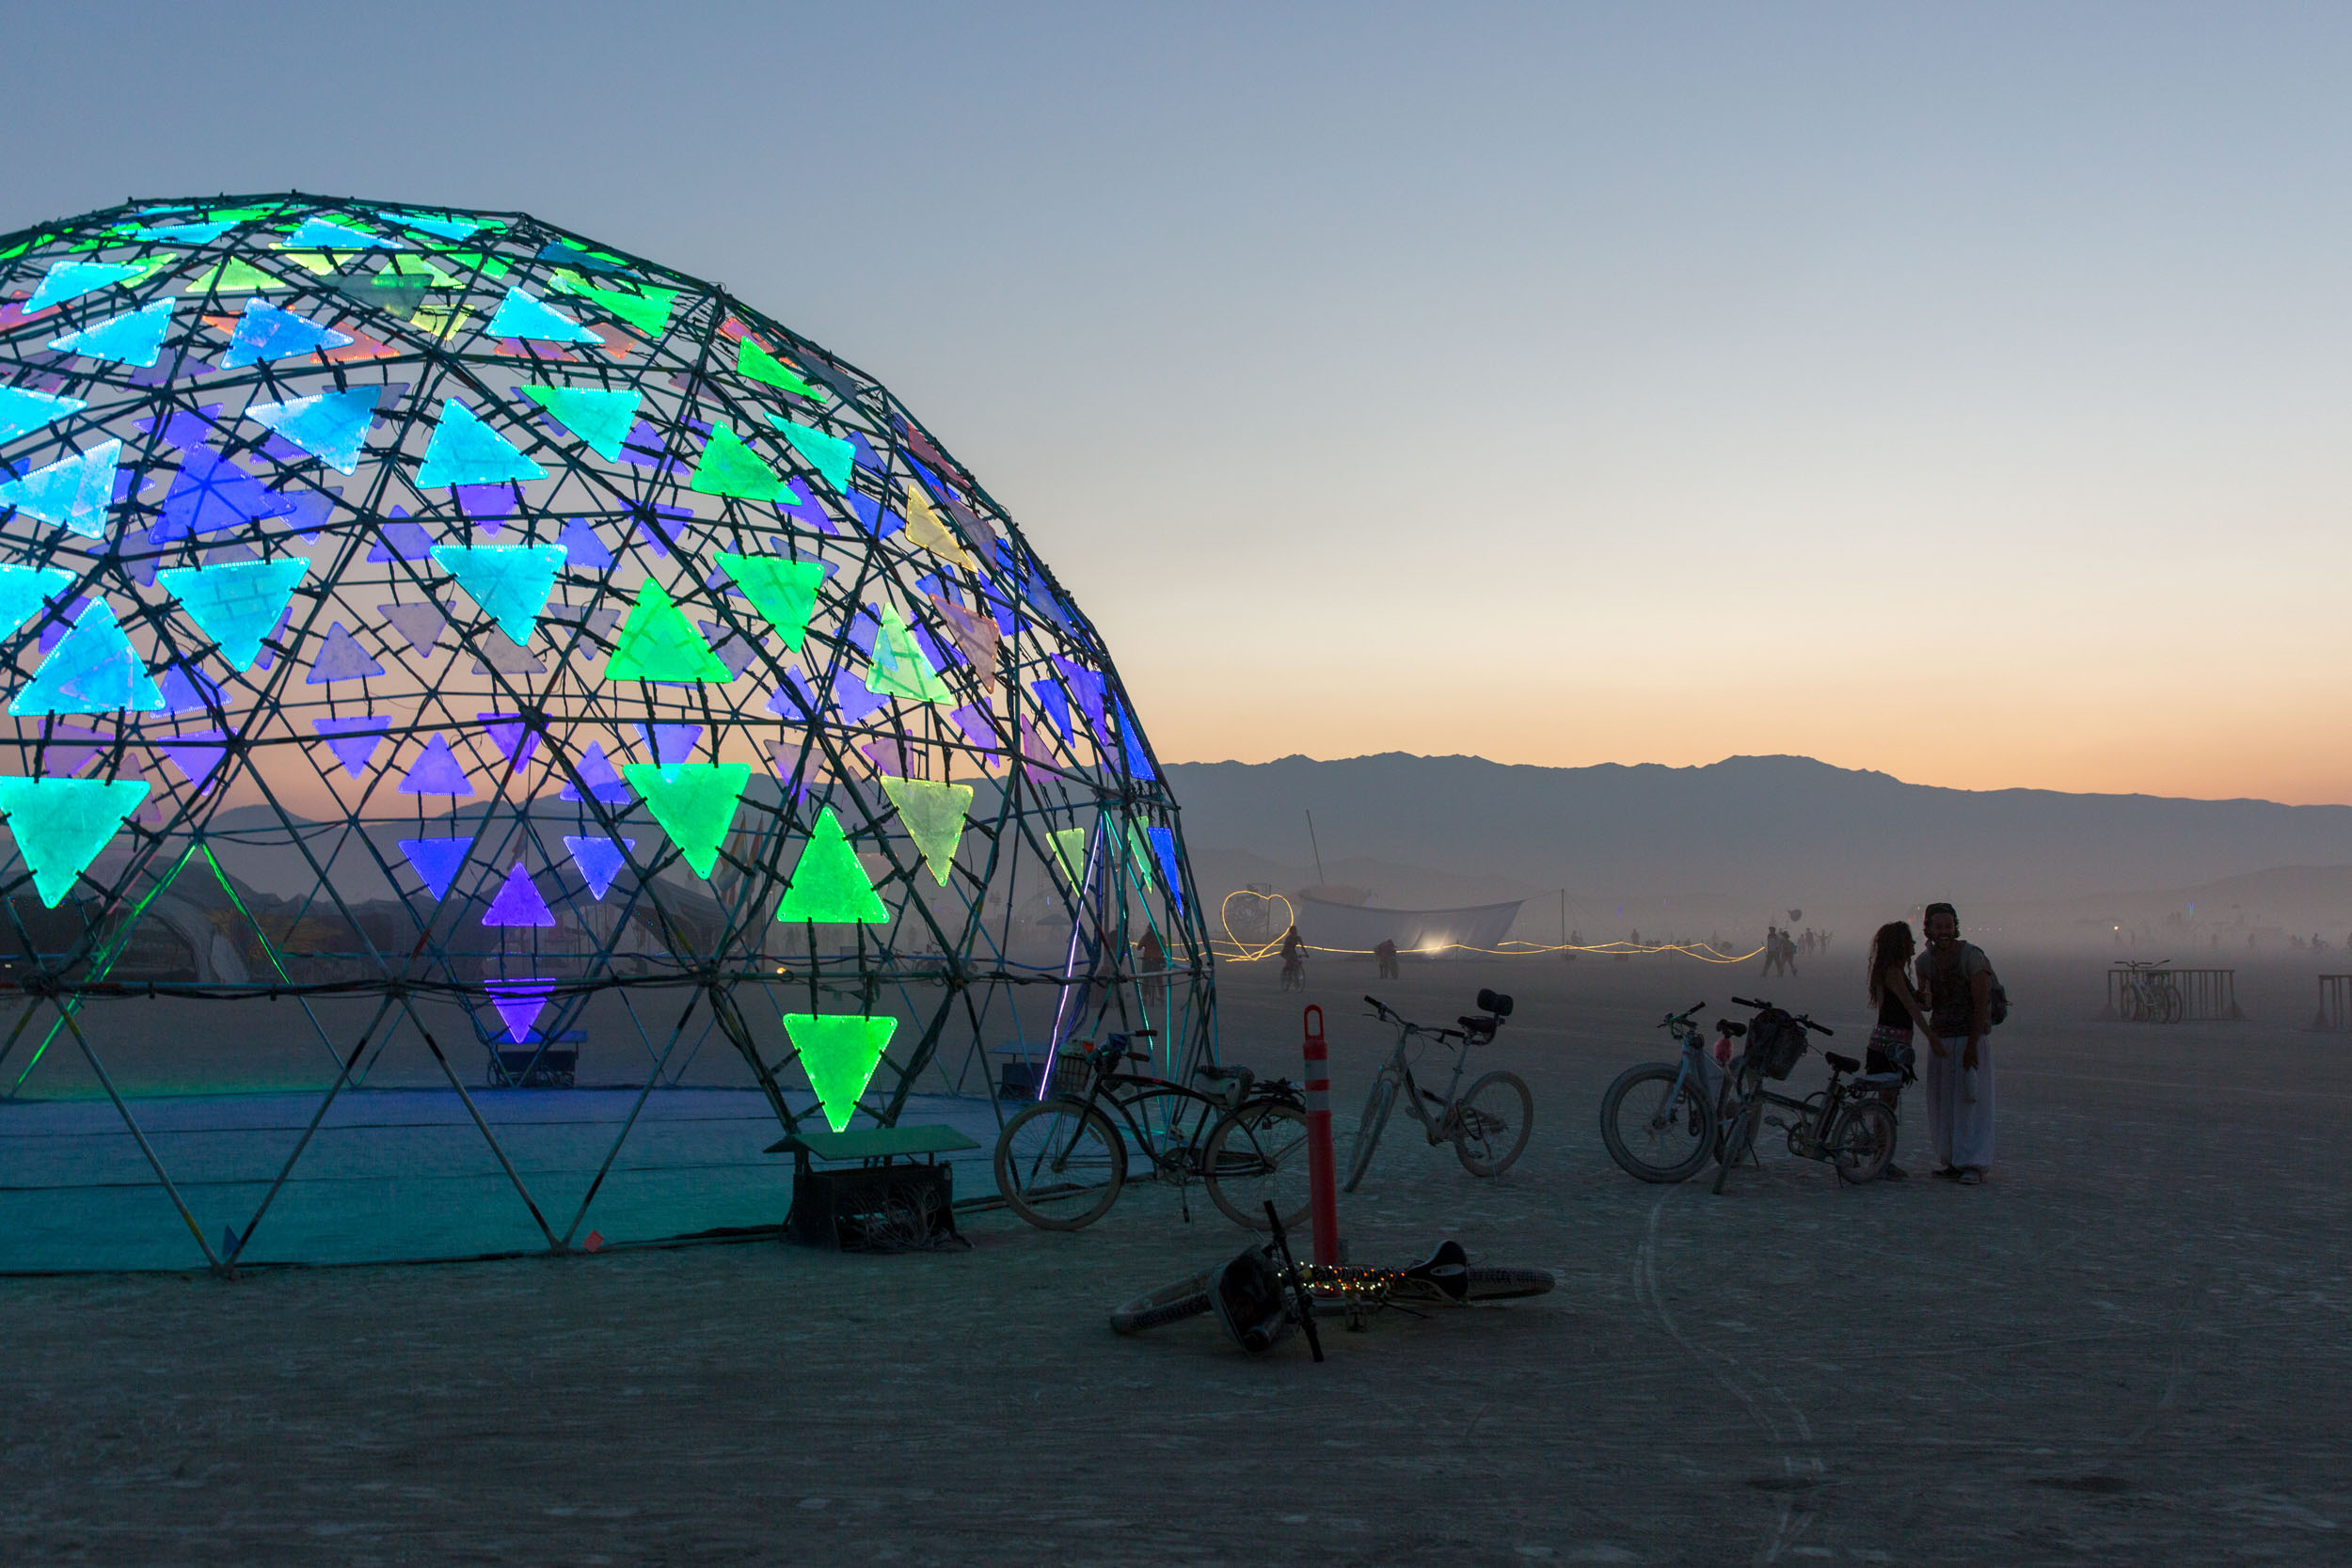 20170831_BurningMan17_U6A5206